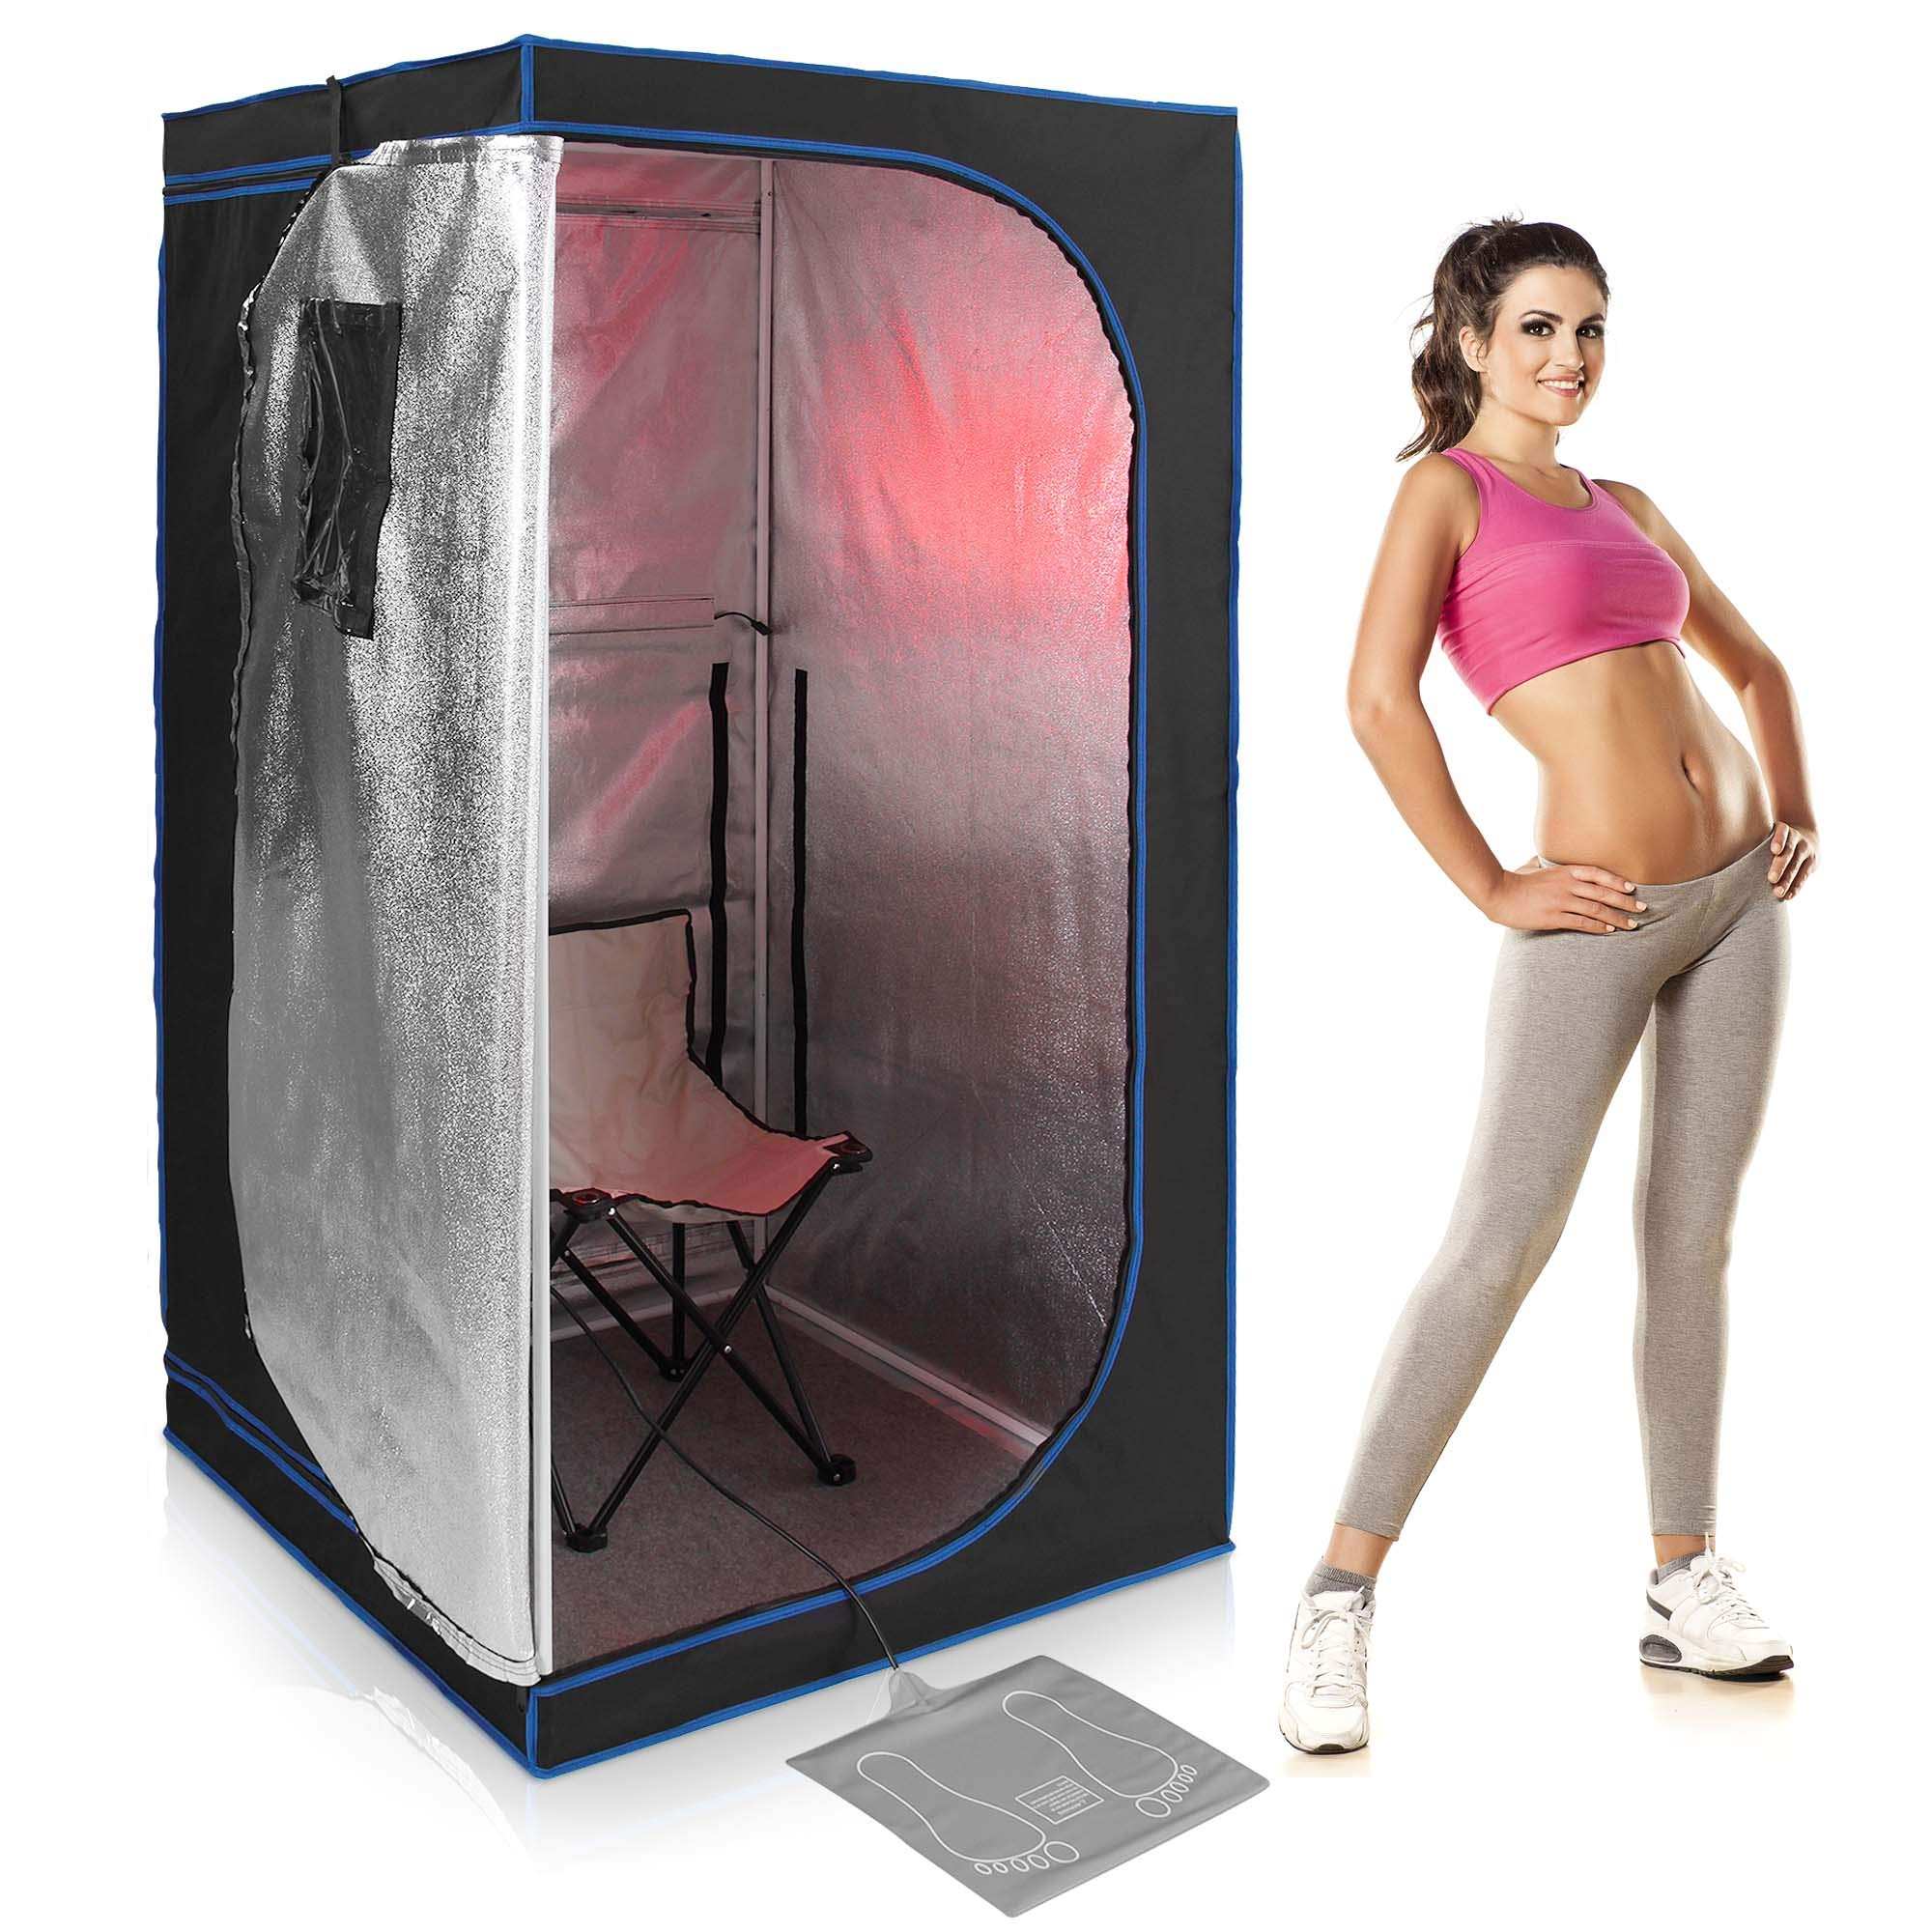 SereneLife Full Size Portable Sauna - Infrared Heating Personal Home Spa - with Heating Foot Pad and Portable Chair by SereneLife